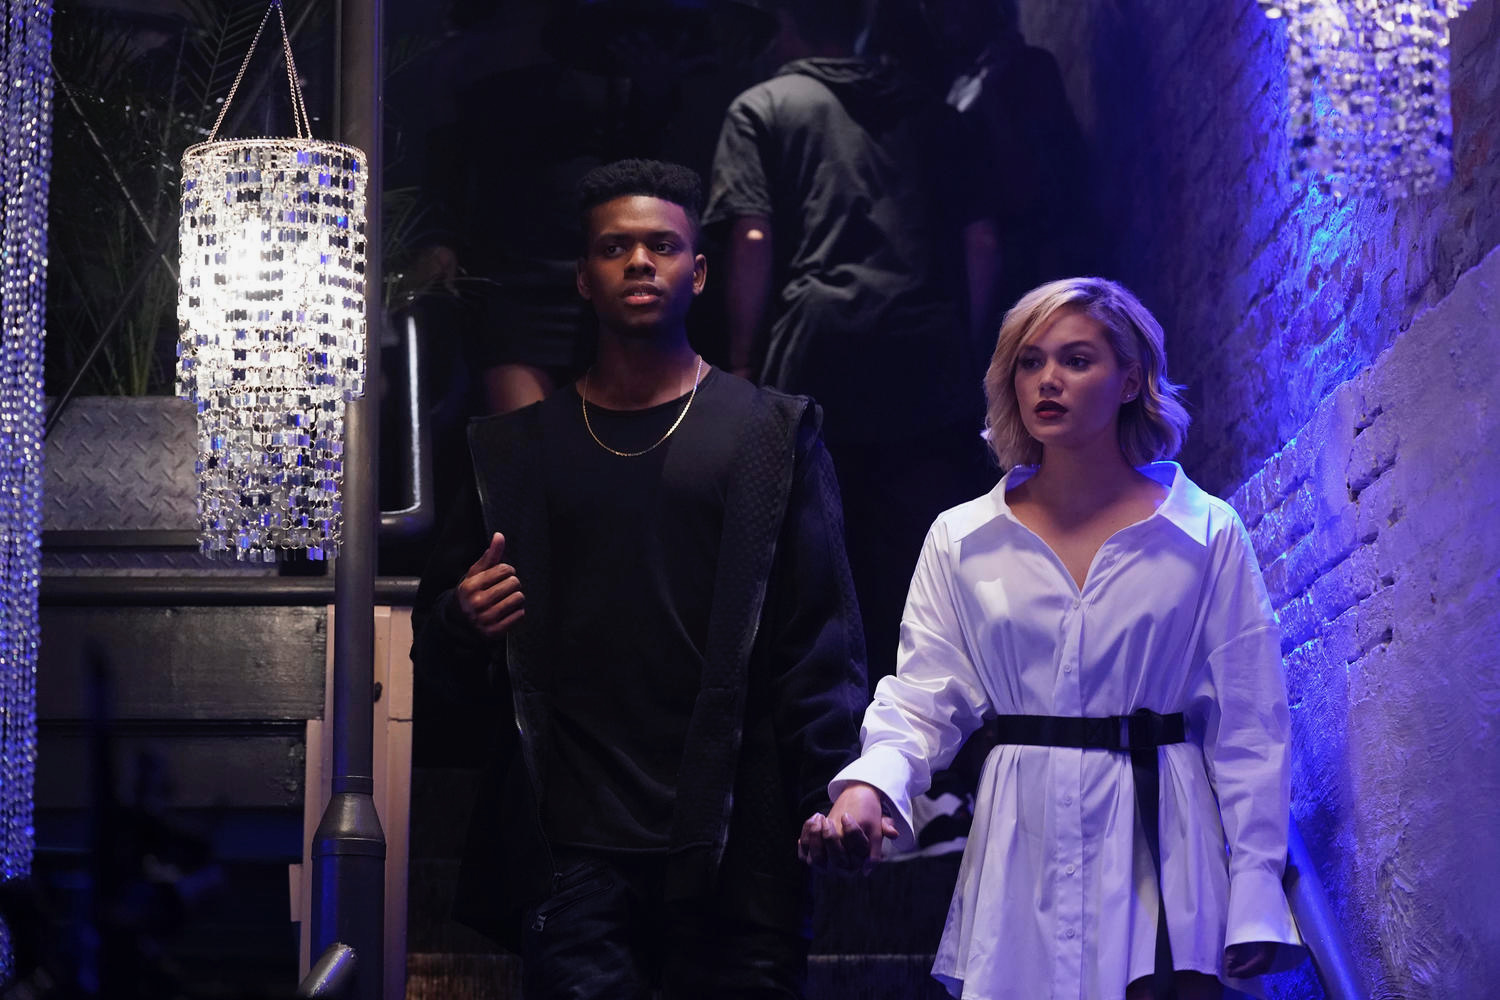 Aubrey Joseph as Tyron, Olivia Holt as Tandy in Cloak & Dagger Season 2  Alfonso Bresciani/ ©️2018 Disney Enterprises, Inc.    Season 2 turns the heat up on our young heroes, as Tyrone and Tandy try to find their place as more active heroes in this world. As they learn and grow emotionally, so will their skills. We saw Tandy and Ty dip their toes into the world of hopes and fears; this season, they will dive deeper into this metaphysical pool. With enhanced powers and a choice to make about the type of heroes they want to be, they make the choice to run into the danger, head first. They tackle a heartless vigilante and uncover an evil that's been preying on the young women of the city, as the show takes on more serious topics like gang violence and human trafficking.